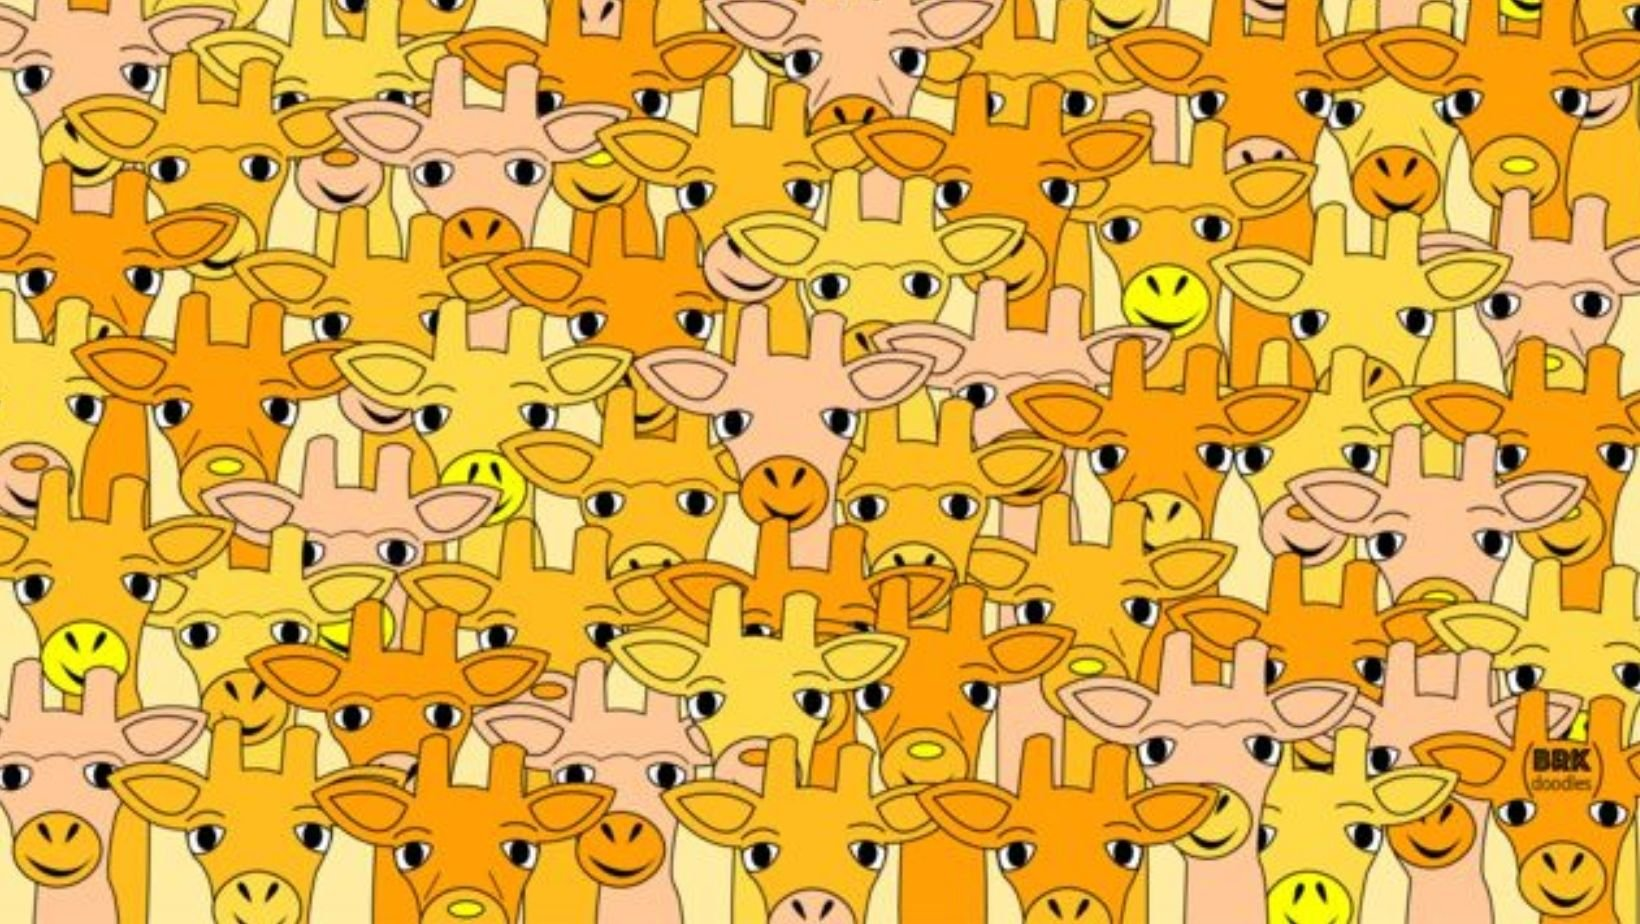 cover 6.jpg?resize=412,232 - Master Yoda Is Hiding Among These Giraffes, Can You Spot Him?